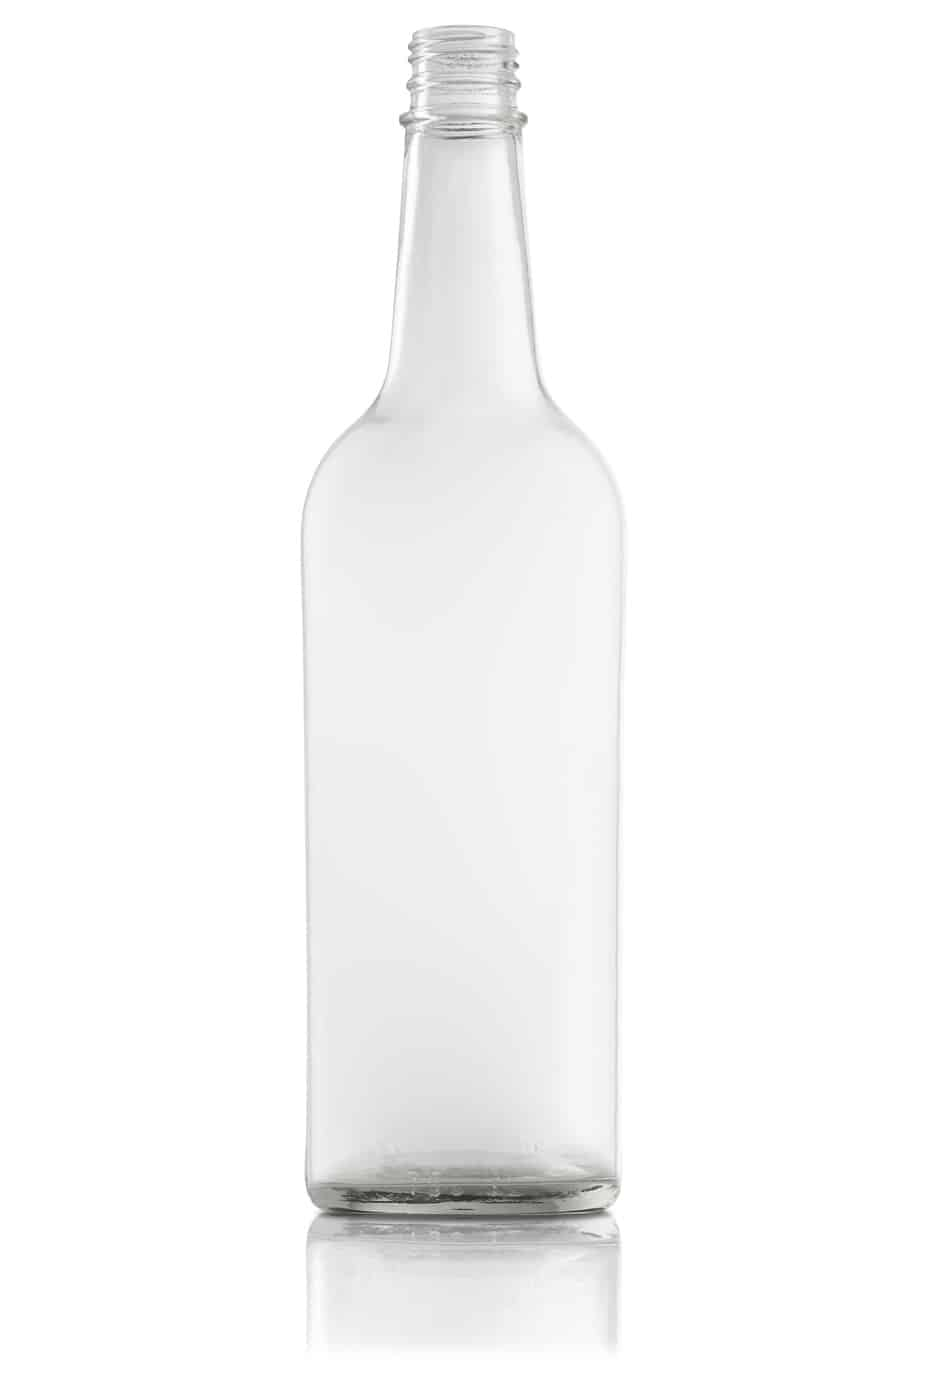 750ml NNPB Liquor FL 28-350 FB